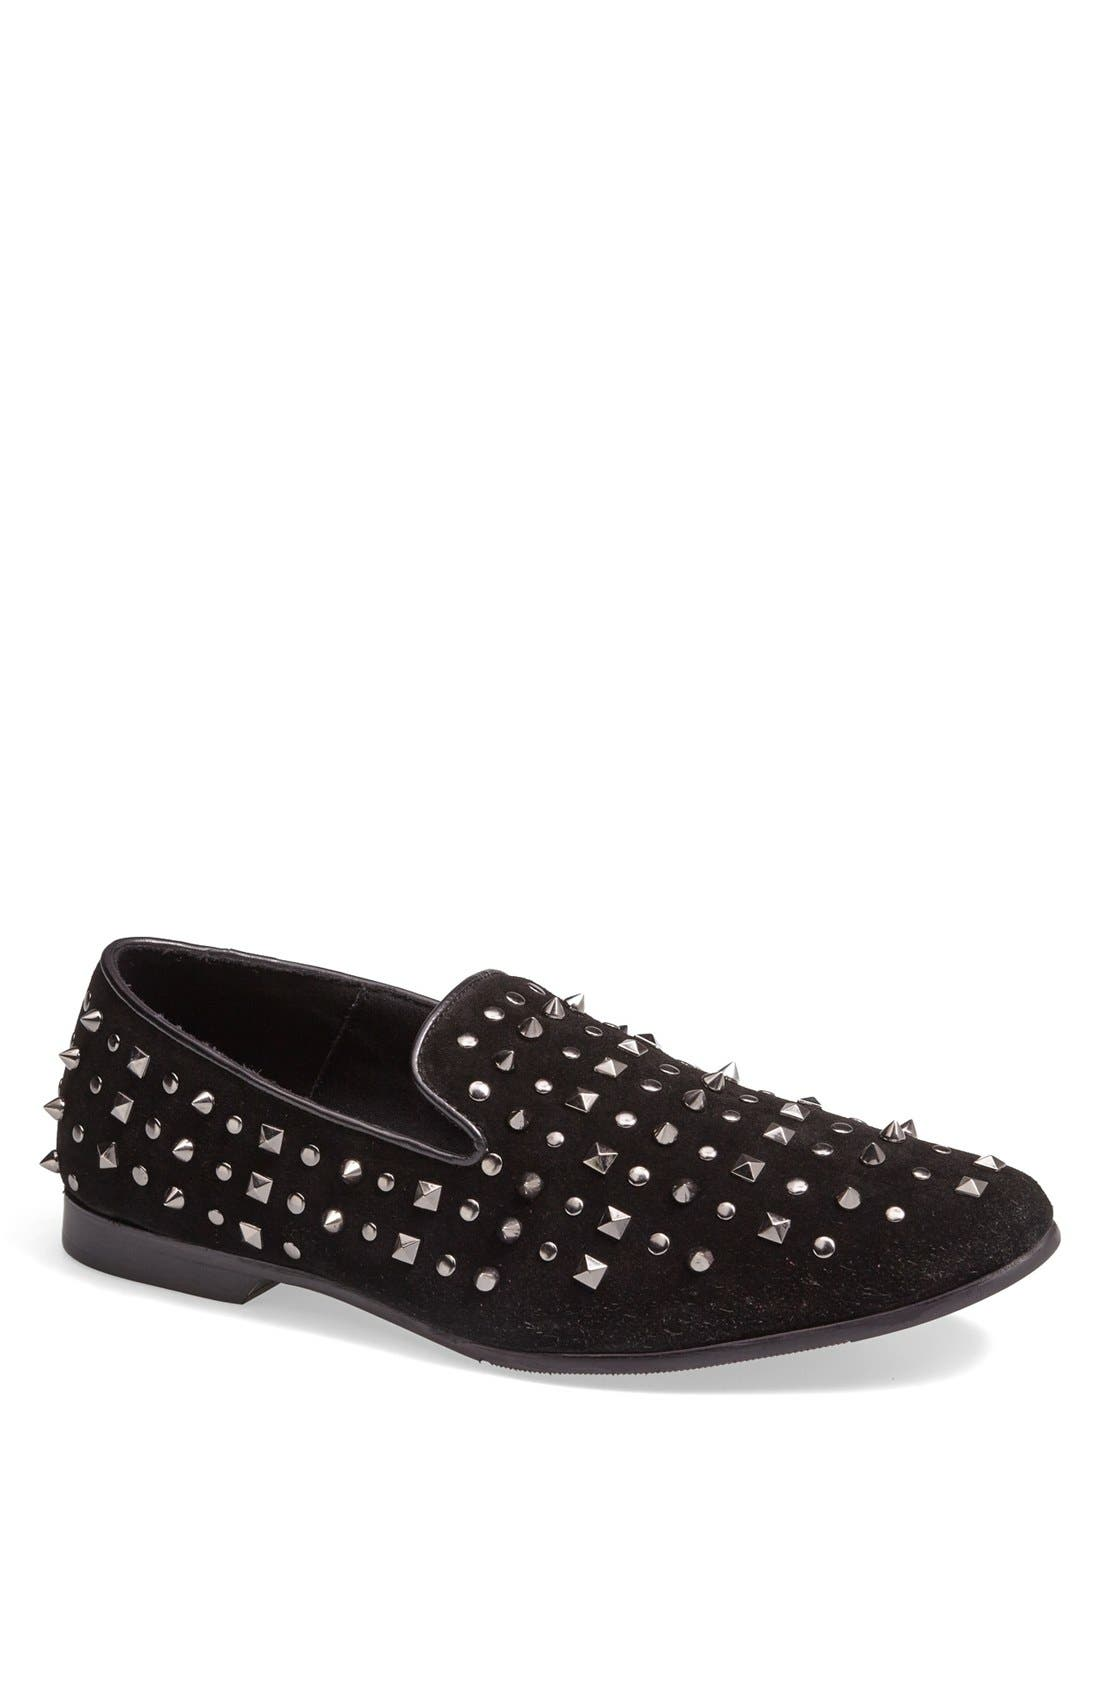 Alternate Image 1 Selected - ALDO 'Coyan' Studded Loafer